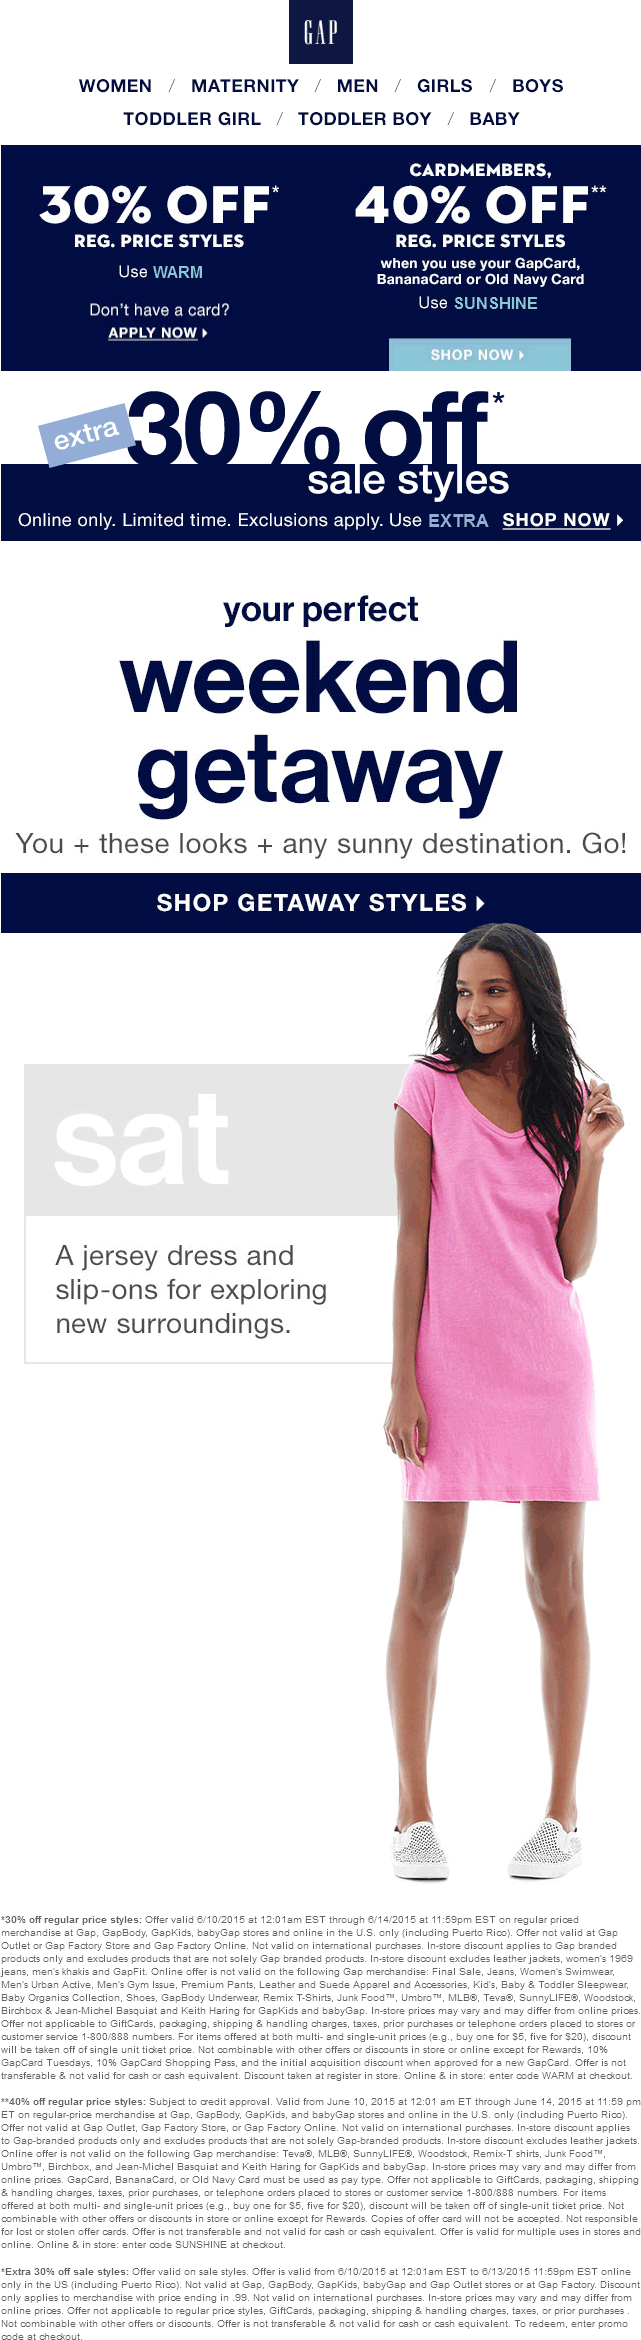 Gap Coupon May 2018 30% off at Gap, GapBody, GapKids & babyGap, or online via promo code WARM